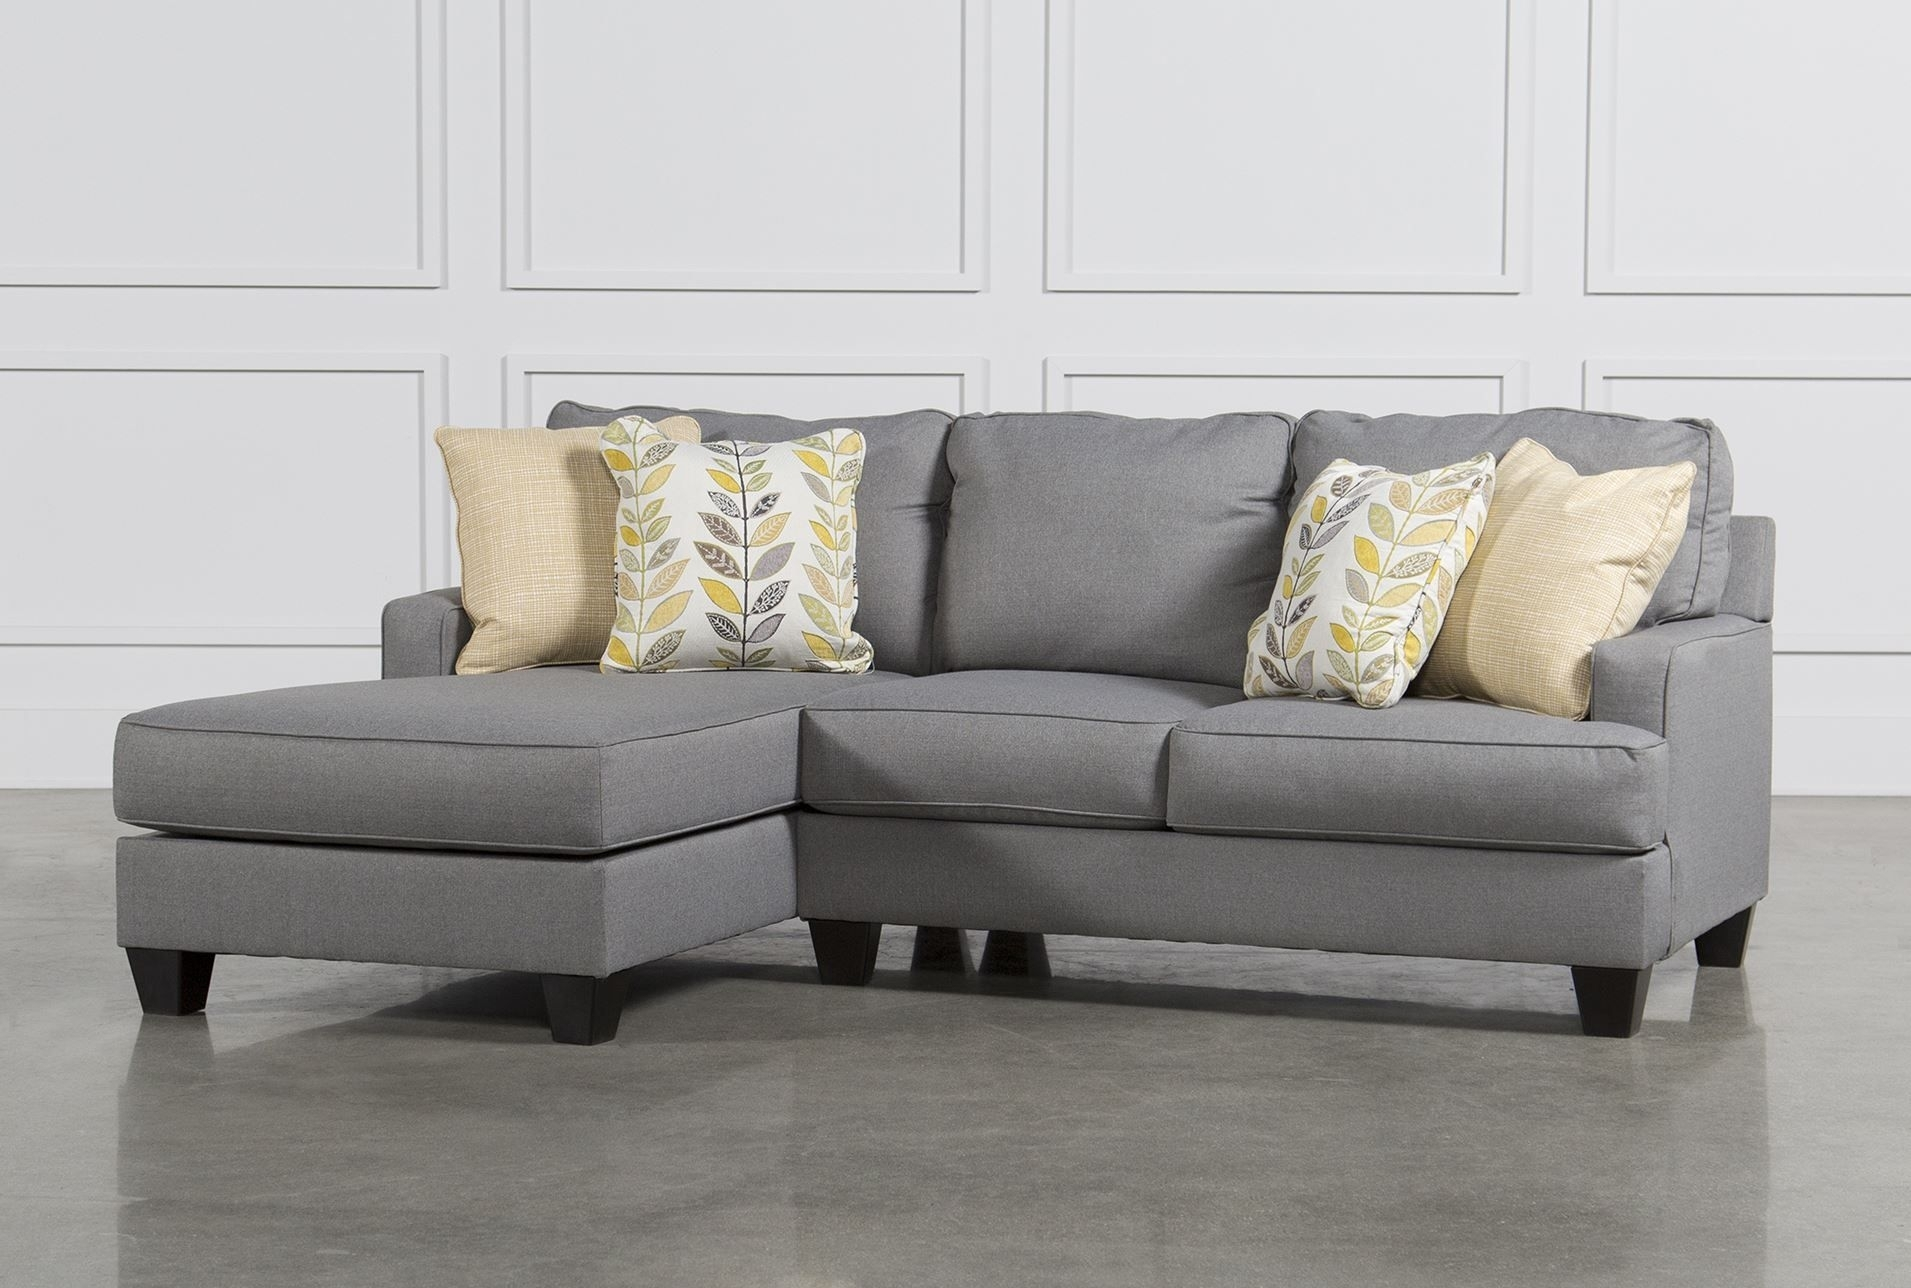 Chamberly 2 Piece Sectional W/laf Chaise - Signature | Light Casual for Meyer 3 Piece Sectionals With Laf Chaise (Image 9 of 30)